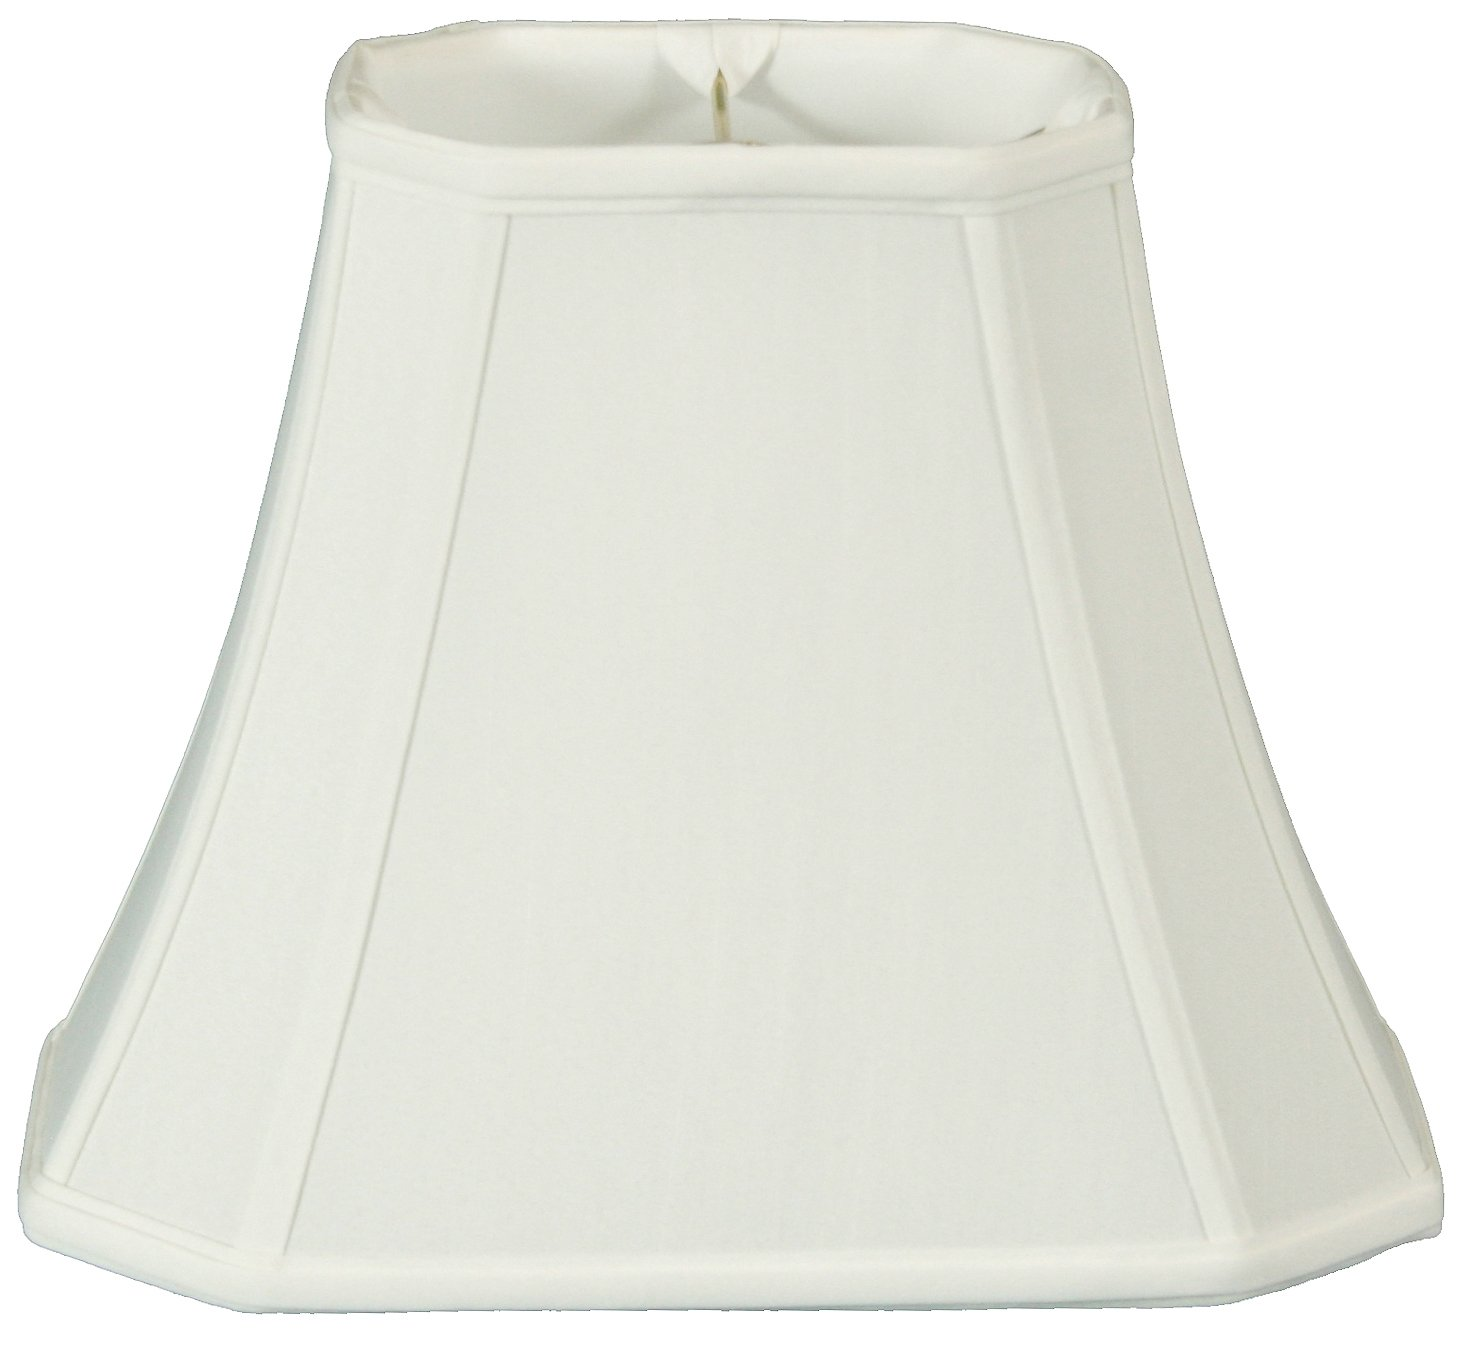 Royal Designs Rectangle Cut Corner Lamp Shade - White - (5 x 6.5) x (8 x 12) x 10